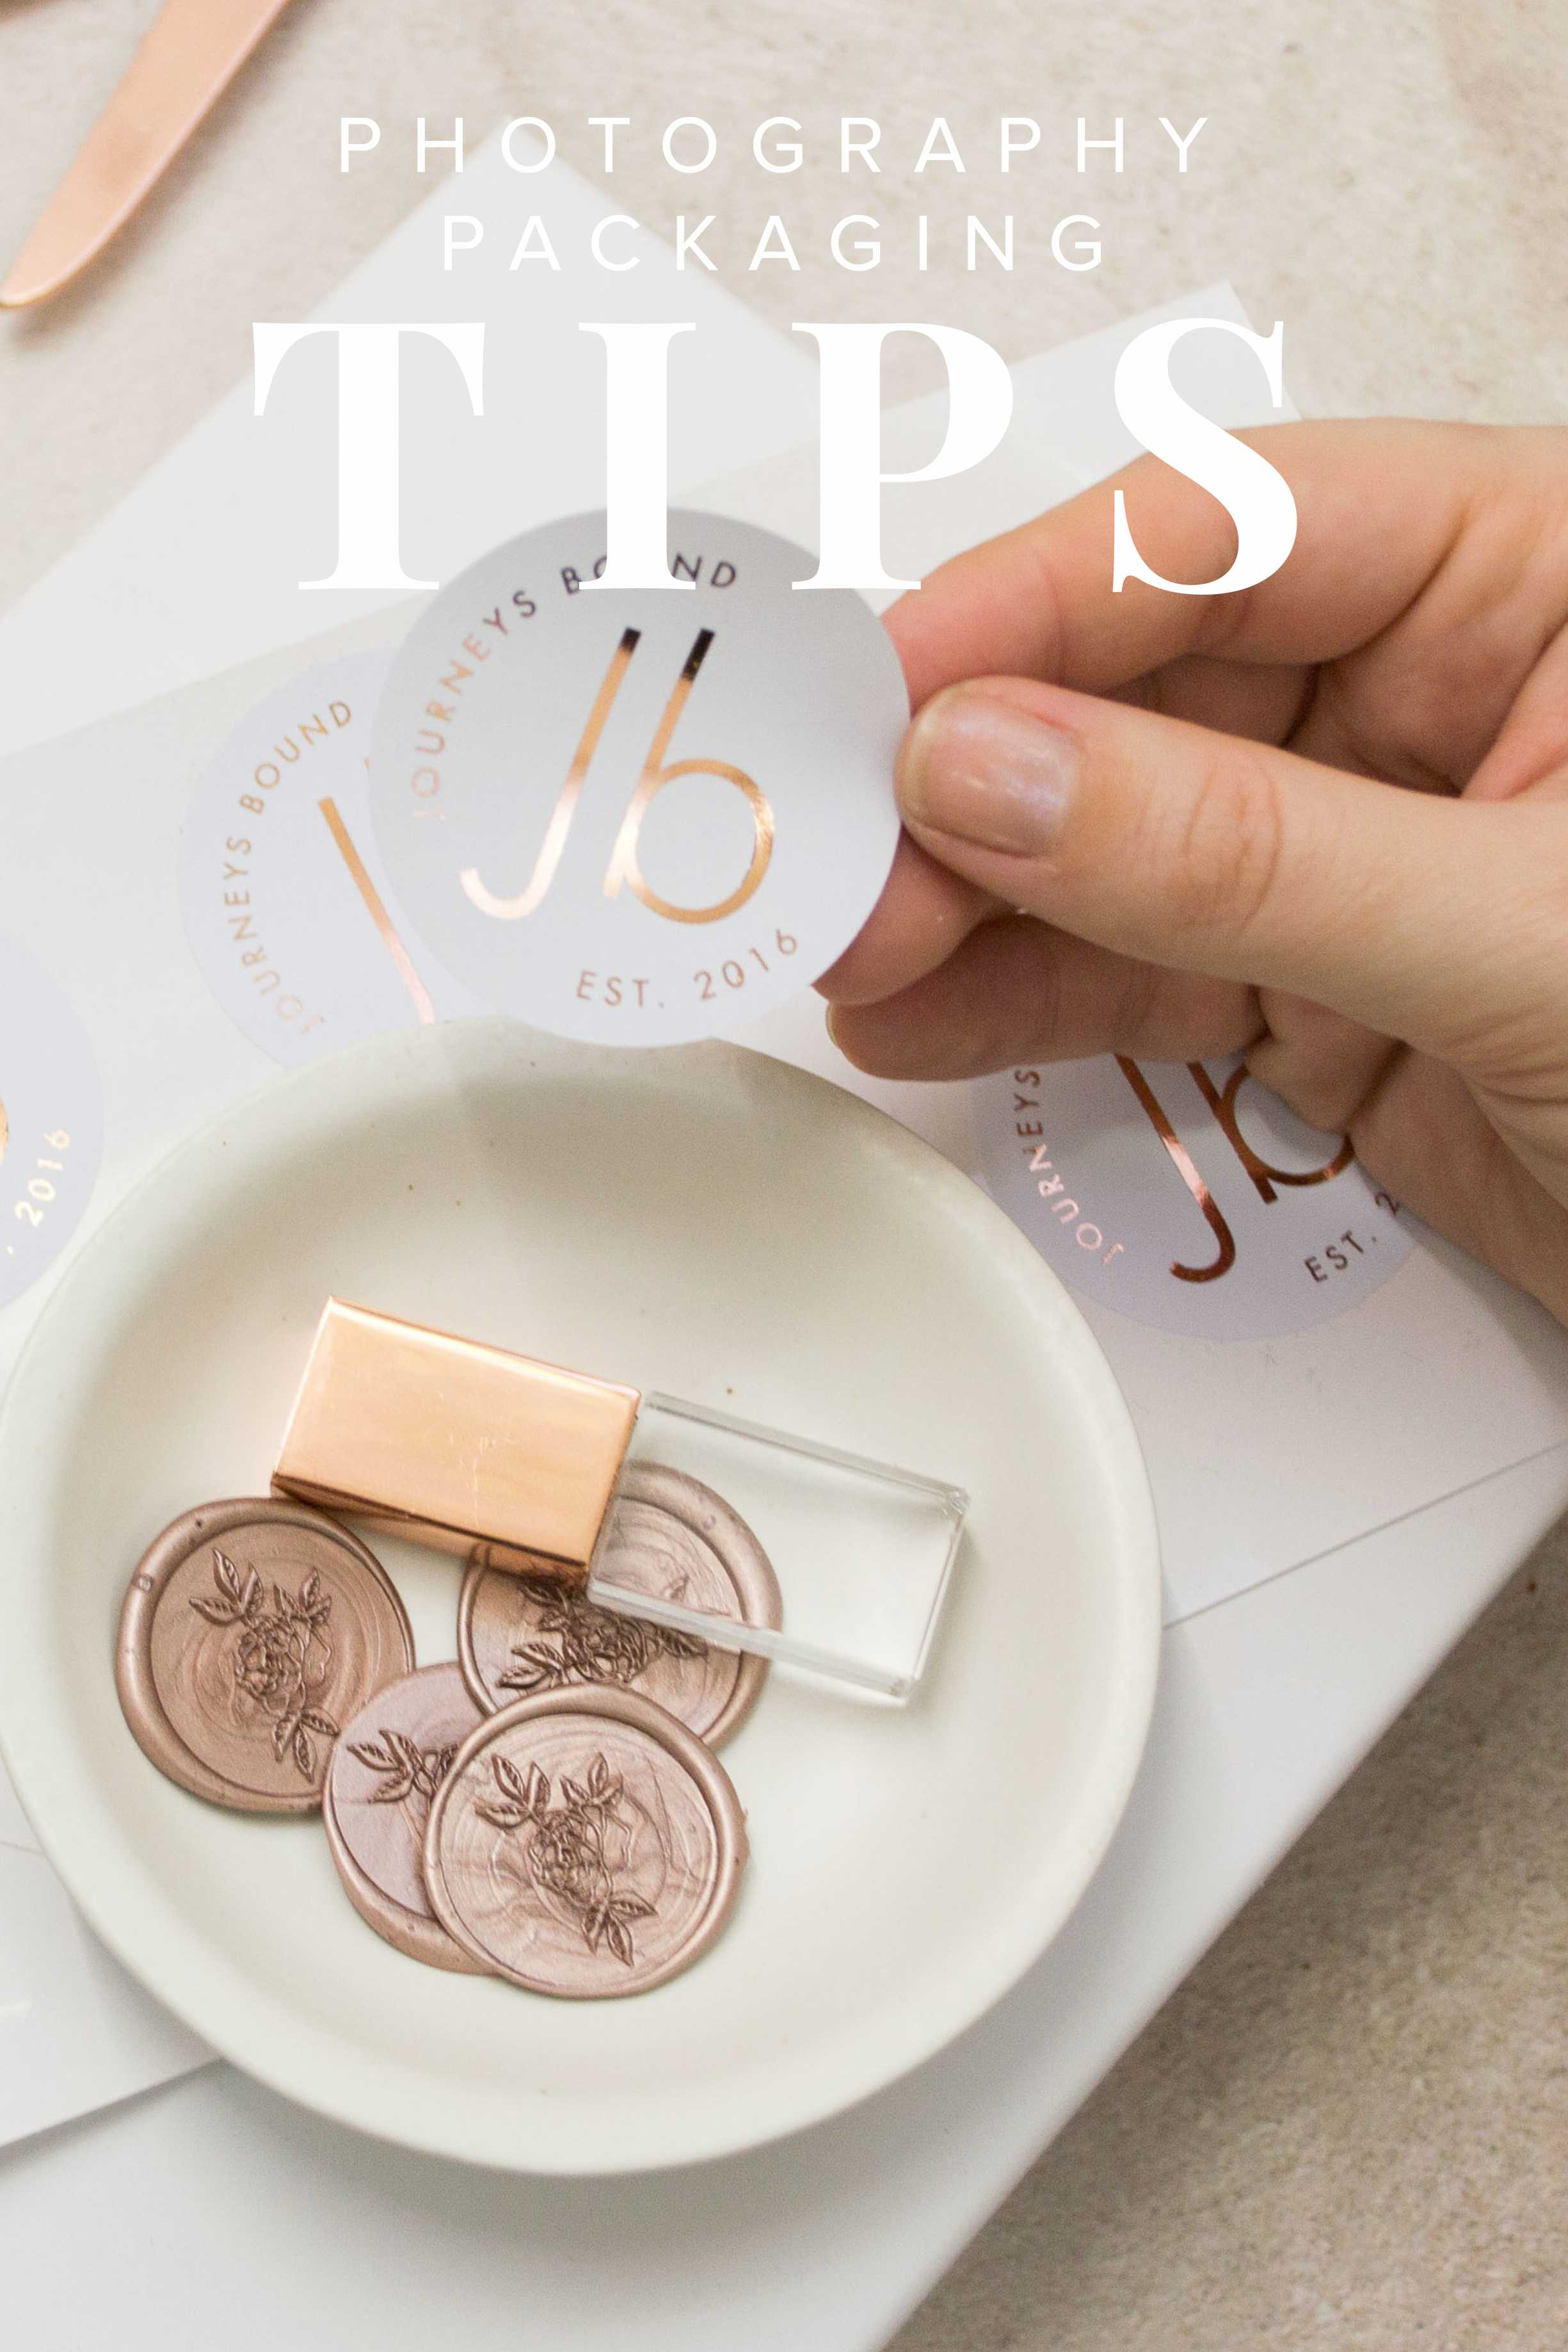 Molly-and-Tom-Photography-packaging-tips.jpg